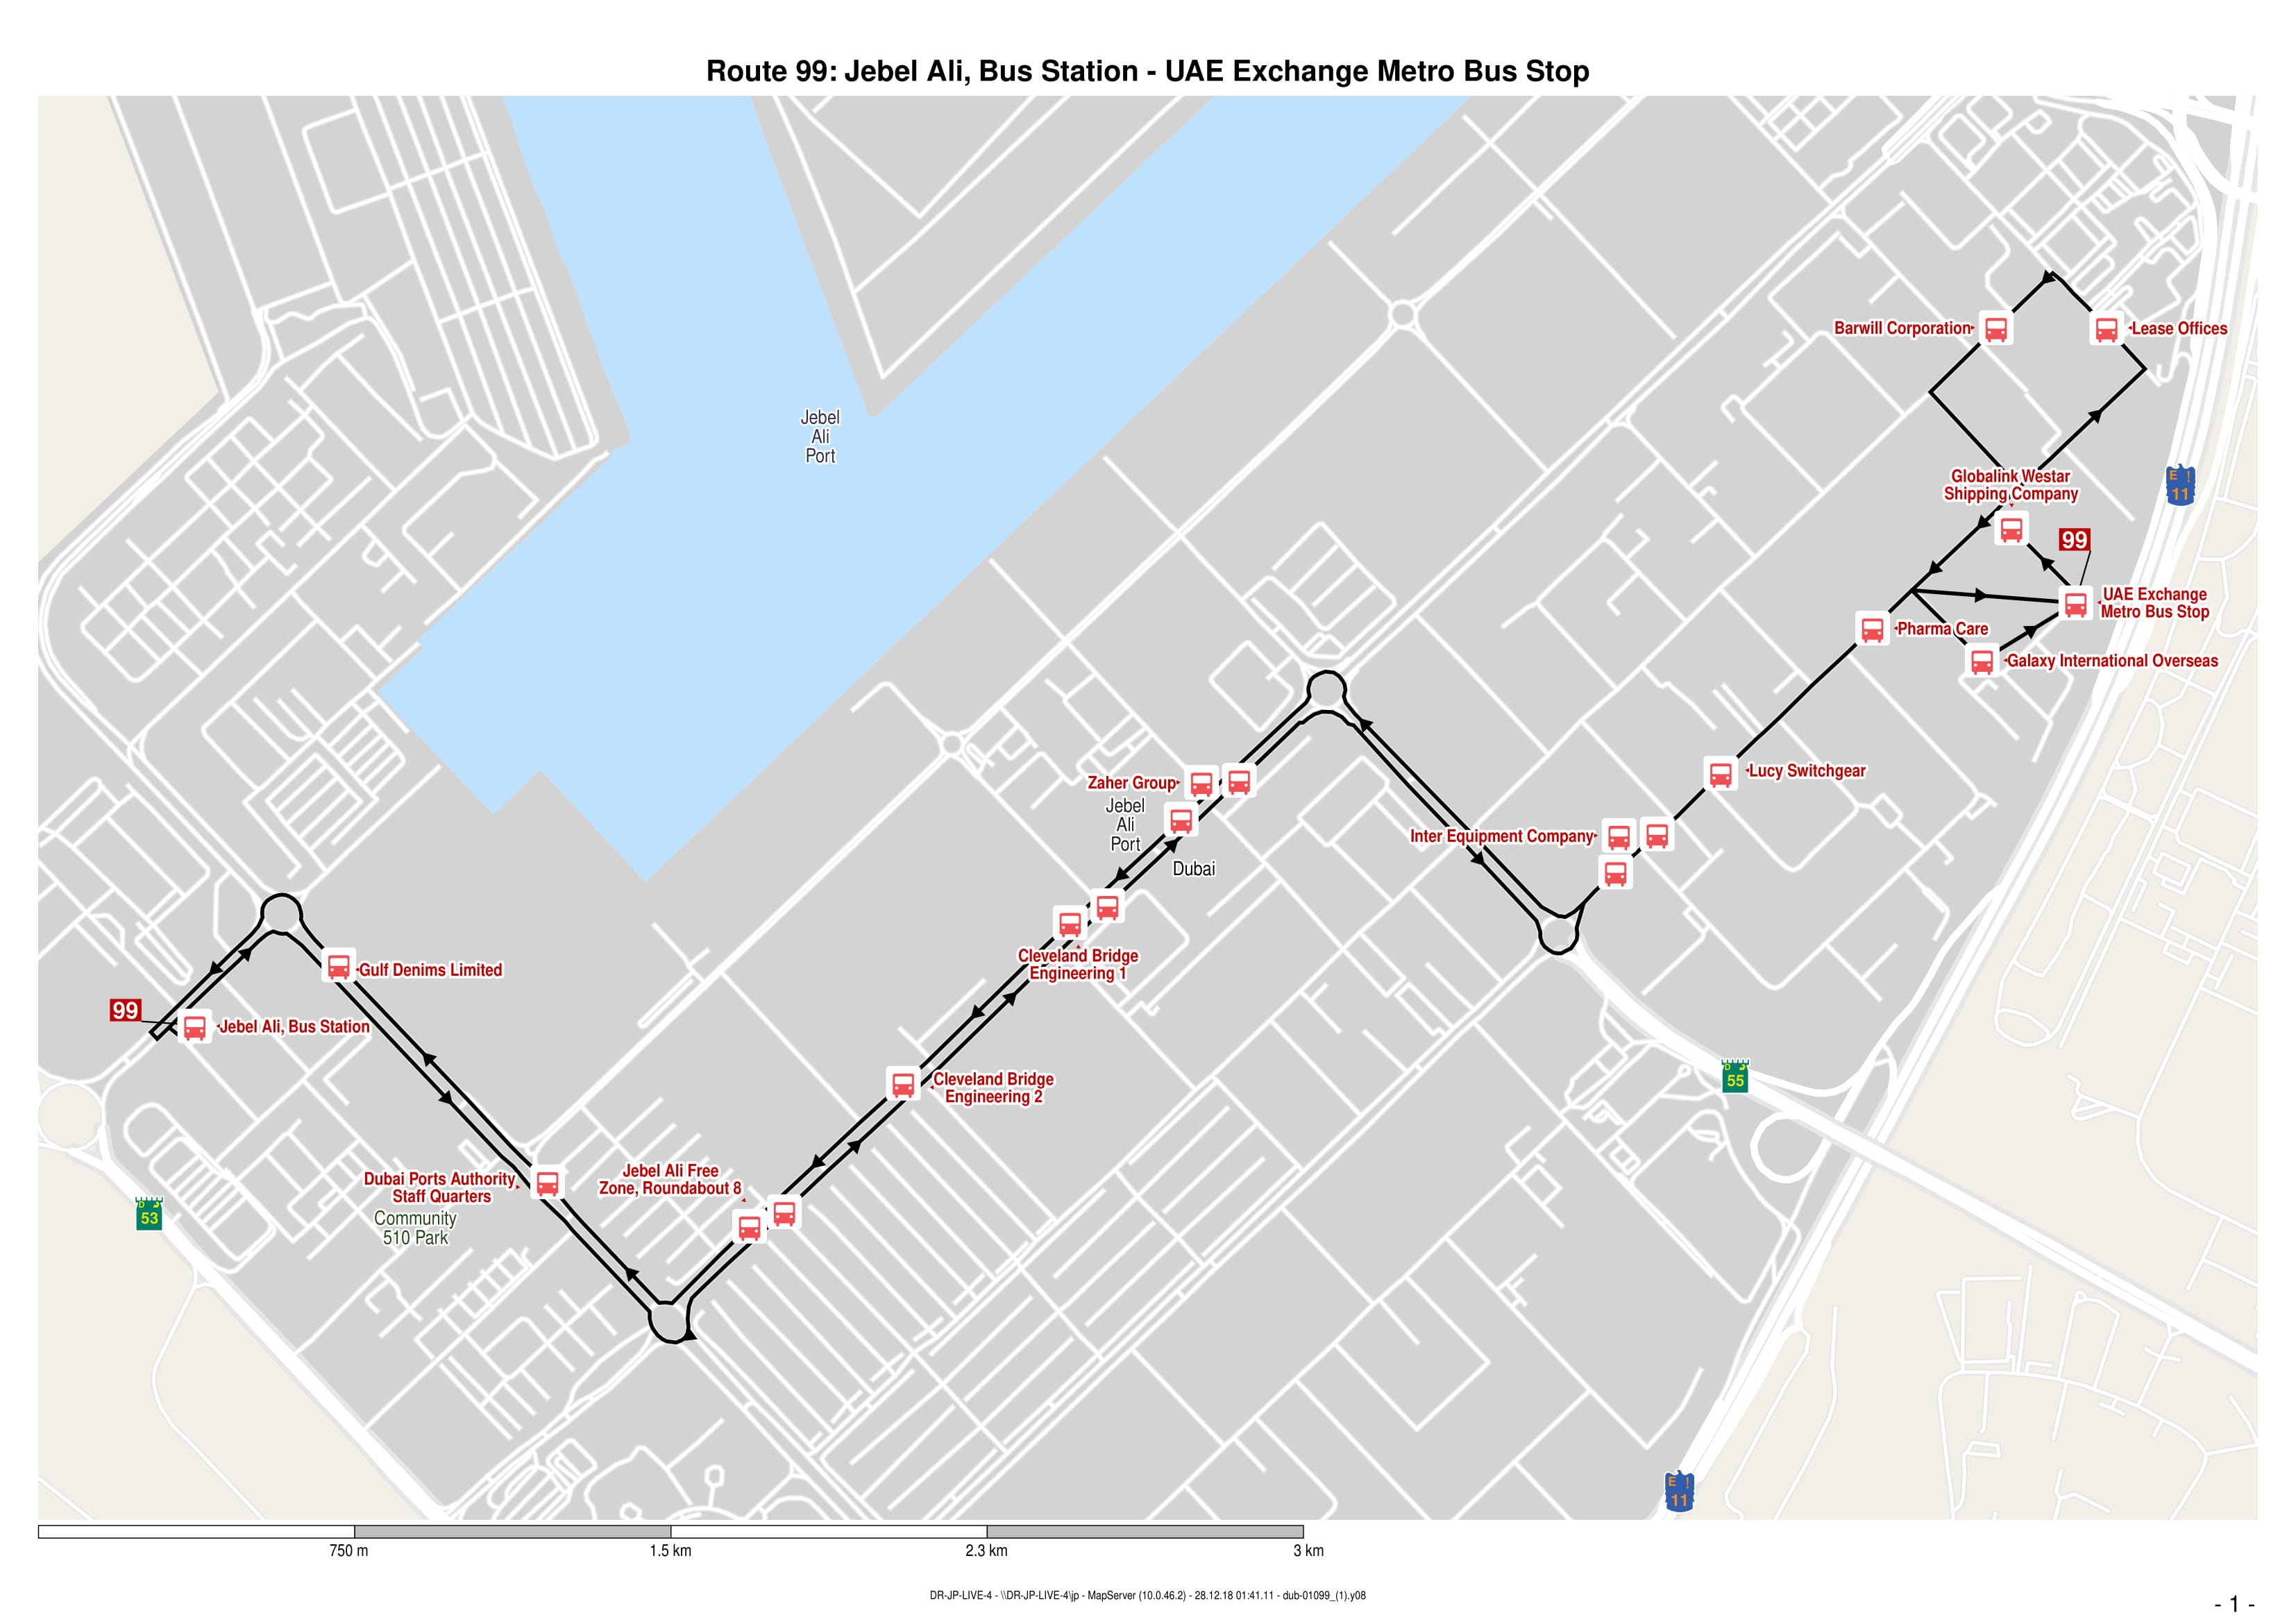 View 99 Bus Route Map Click To Enlarge